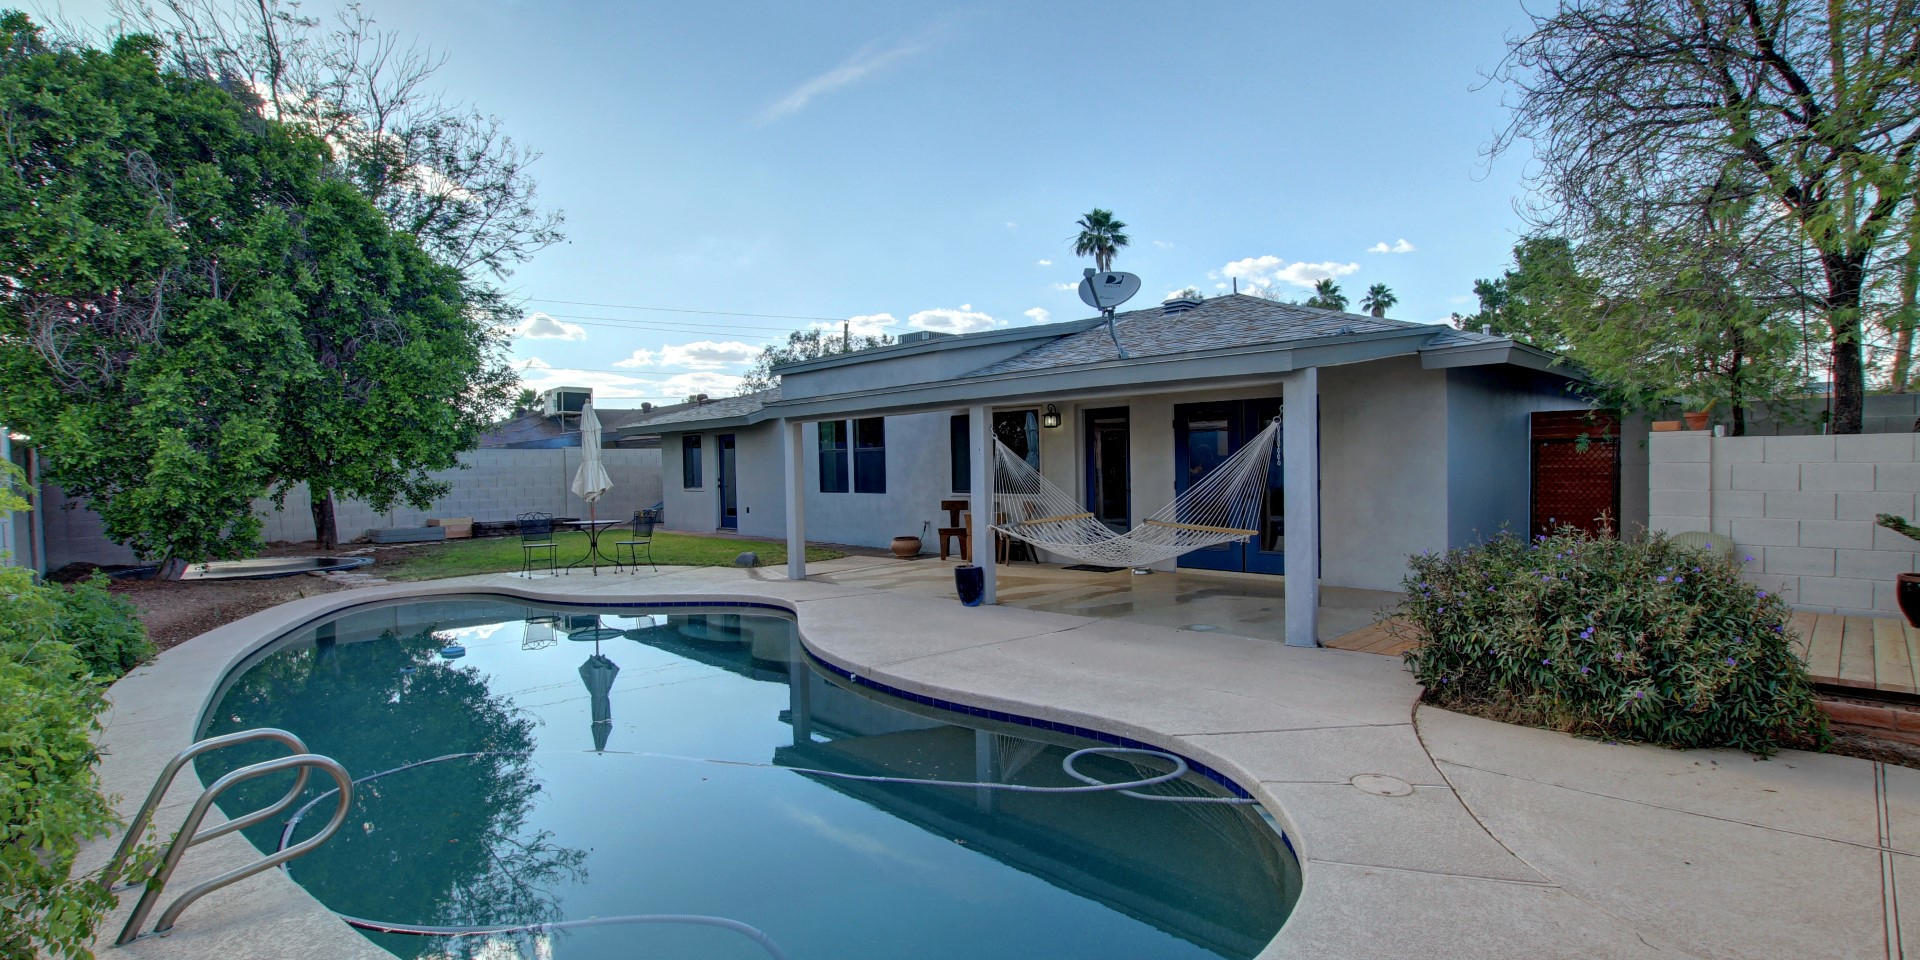 Tempe Arizona Home With Pool Available Now - Platinum Realty Network Carefree AZ